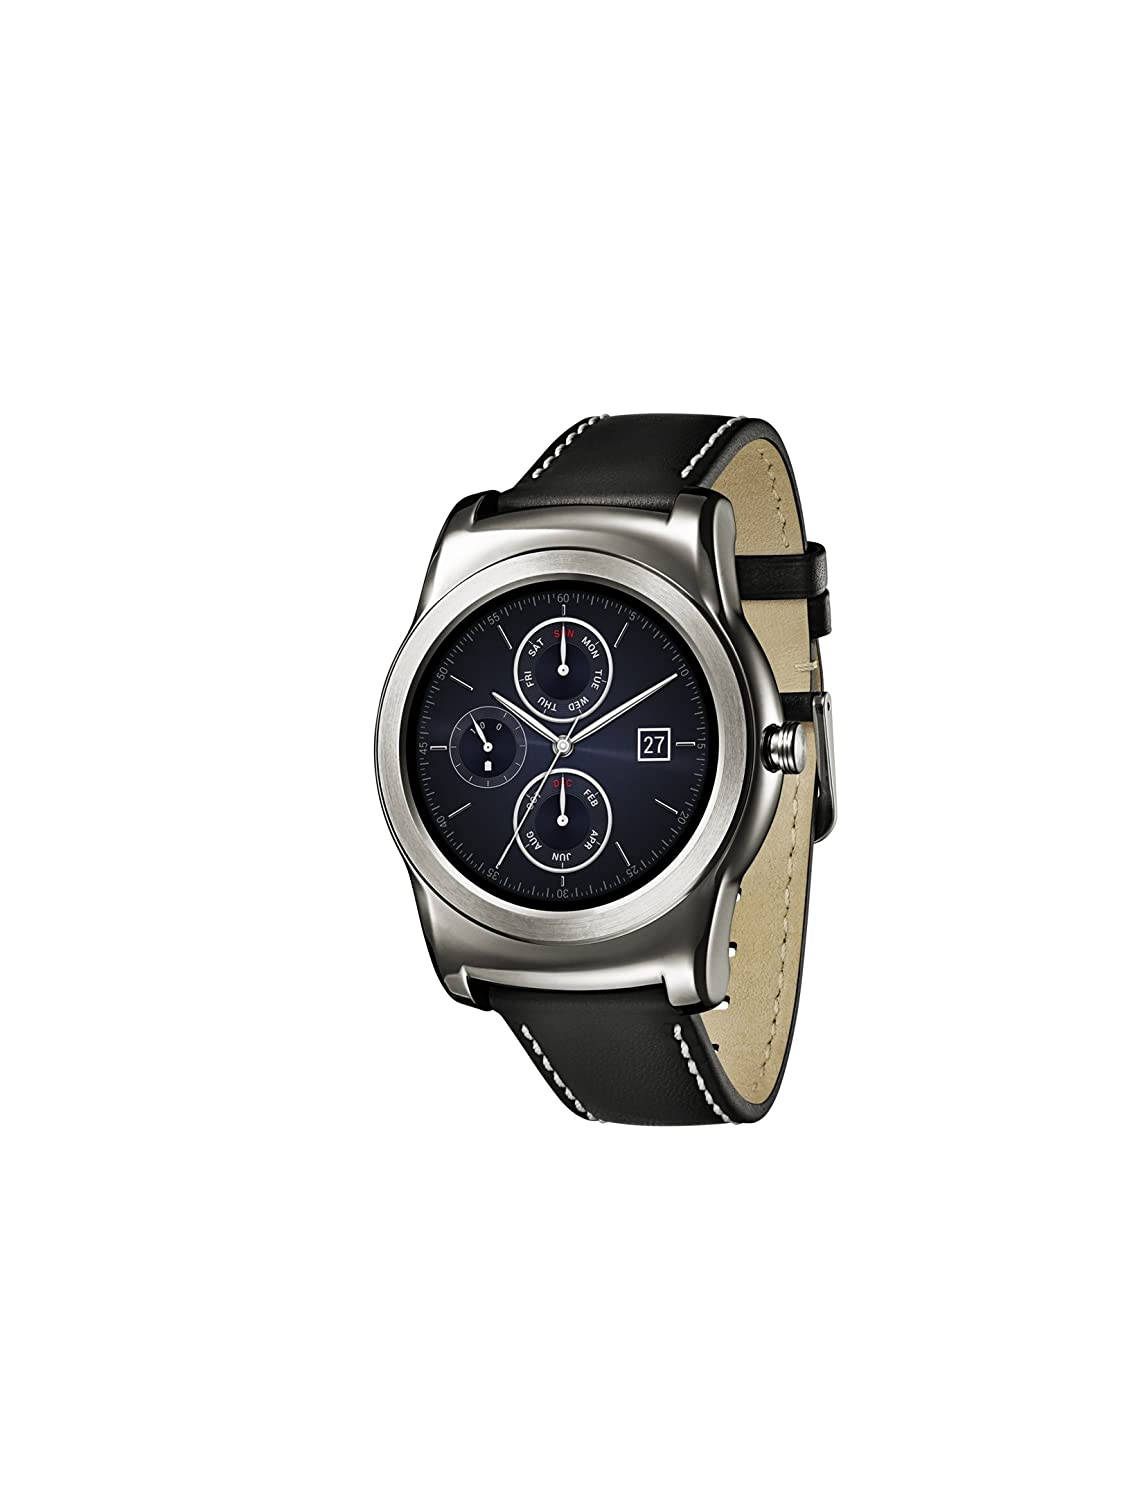 LG G Watch Urban - Smartwatch Android (pantalla 1.3